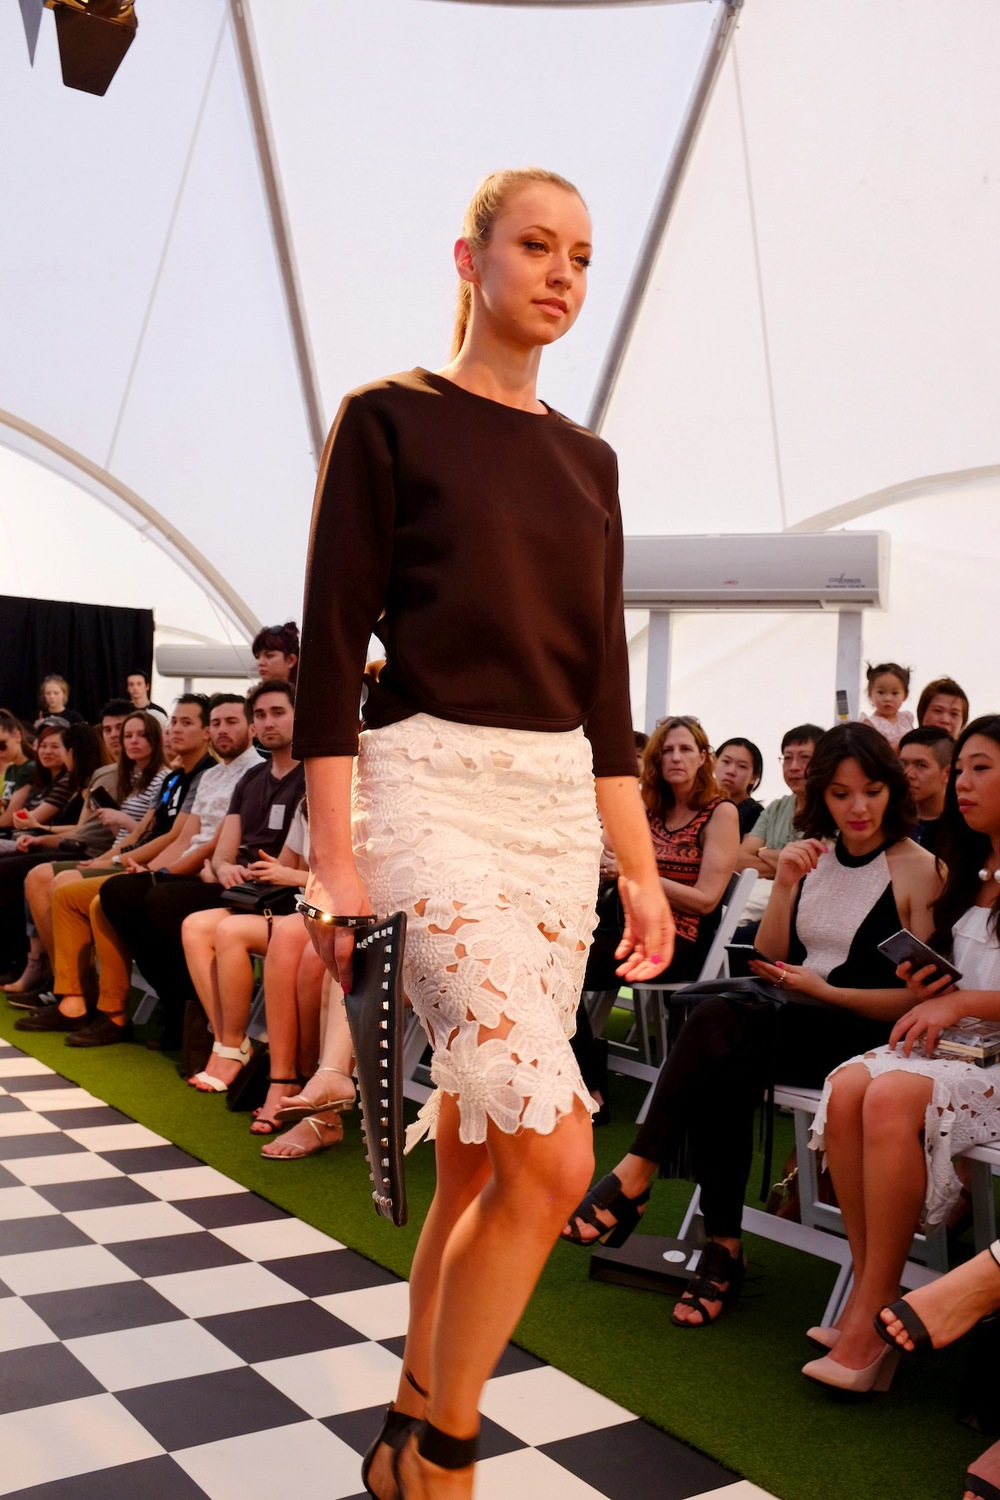 hello parry, online store, tpff, Perth Fashion Festival, Telstra Perth Fashion Festival, TPFF2014, fashion, style, iconic, classic, edgy, contemporary, chic, sandy lai, perth, boutique, nezuki, get the look, runway, fashion runway, blogger, perth blogger, sydney blogger